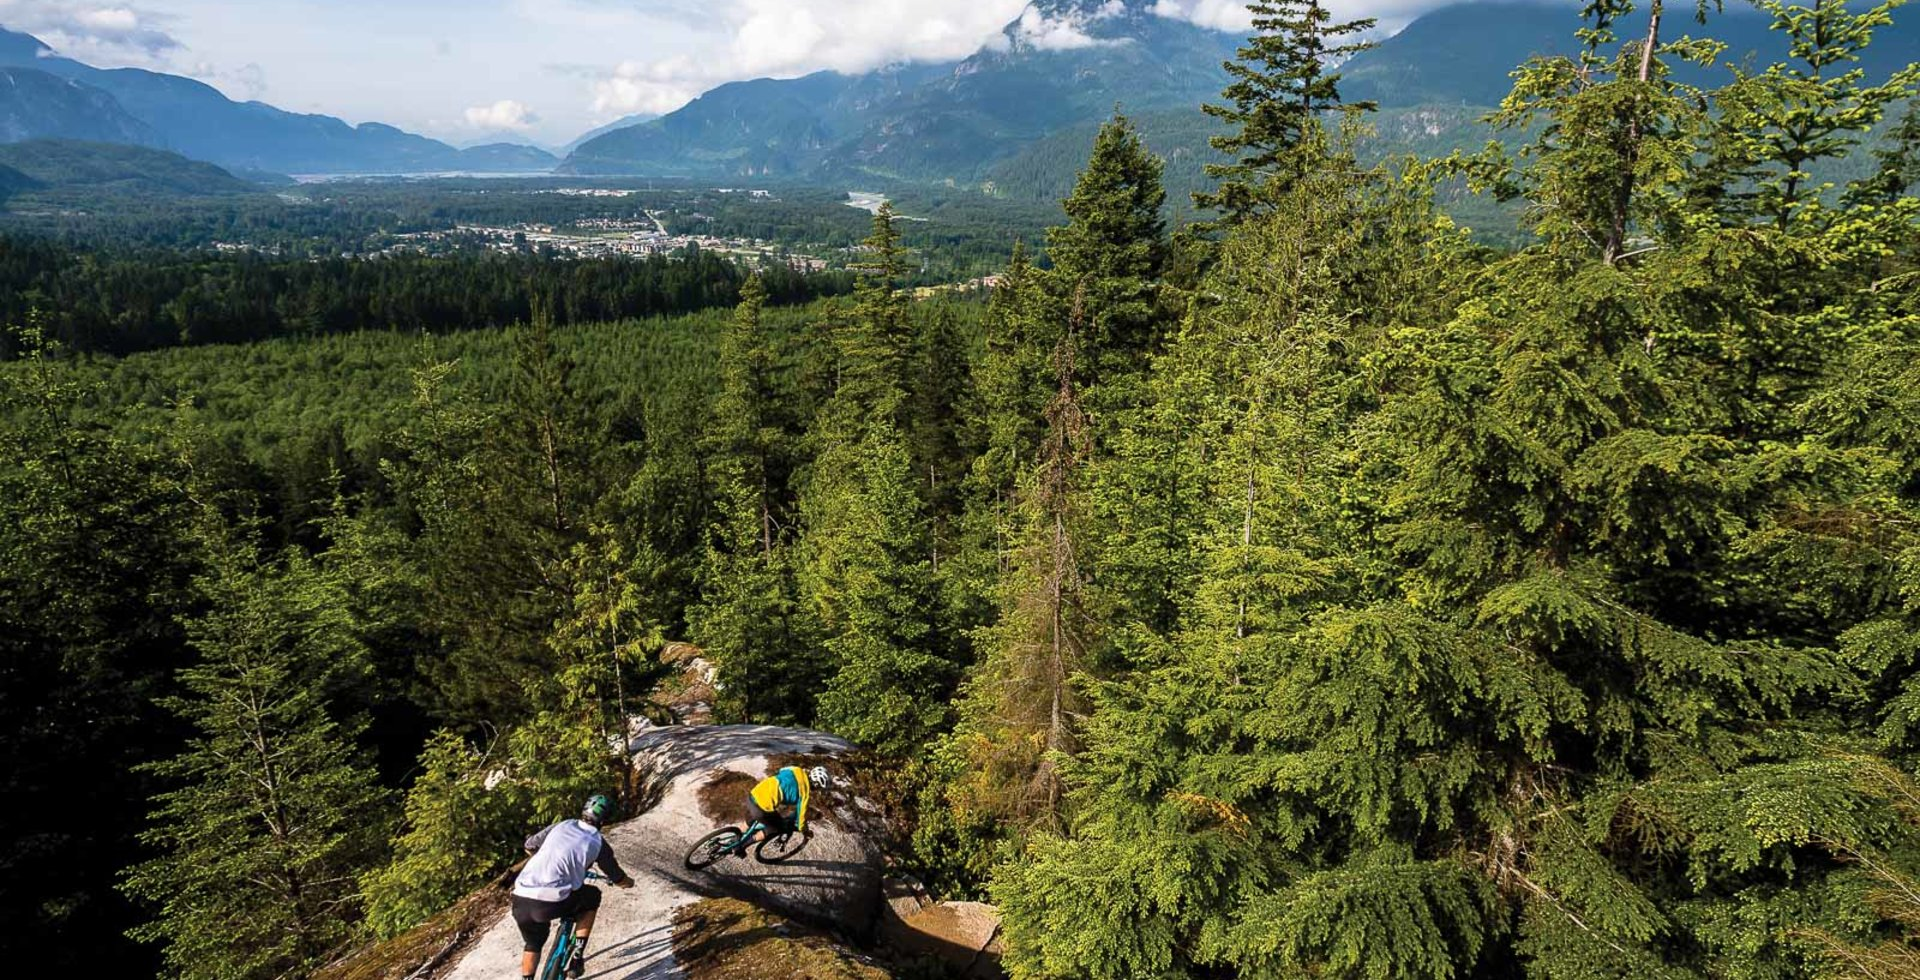 While Squamish, BC has long been known for granite slabs, its progressive land-management strategies might soon be the talk of the town. Stephen Matthews and Sid Slotegraaf drop into Dirk's Diggler with stunning views of the Howe Sound. Photo: Reuben Krabbe